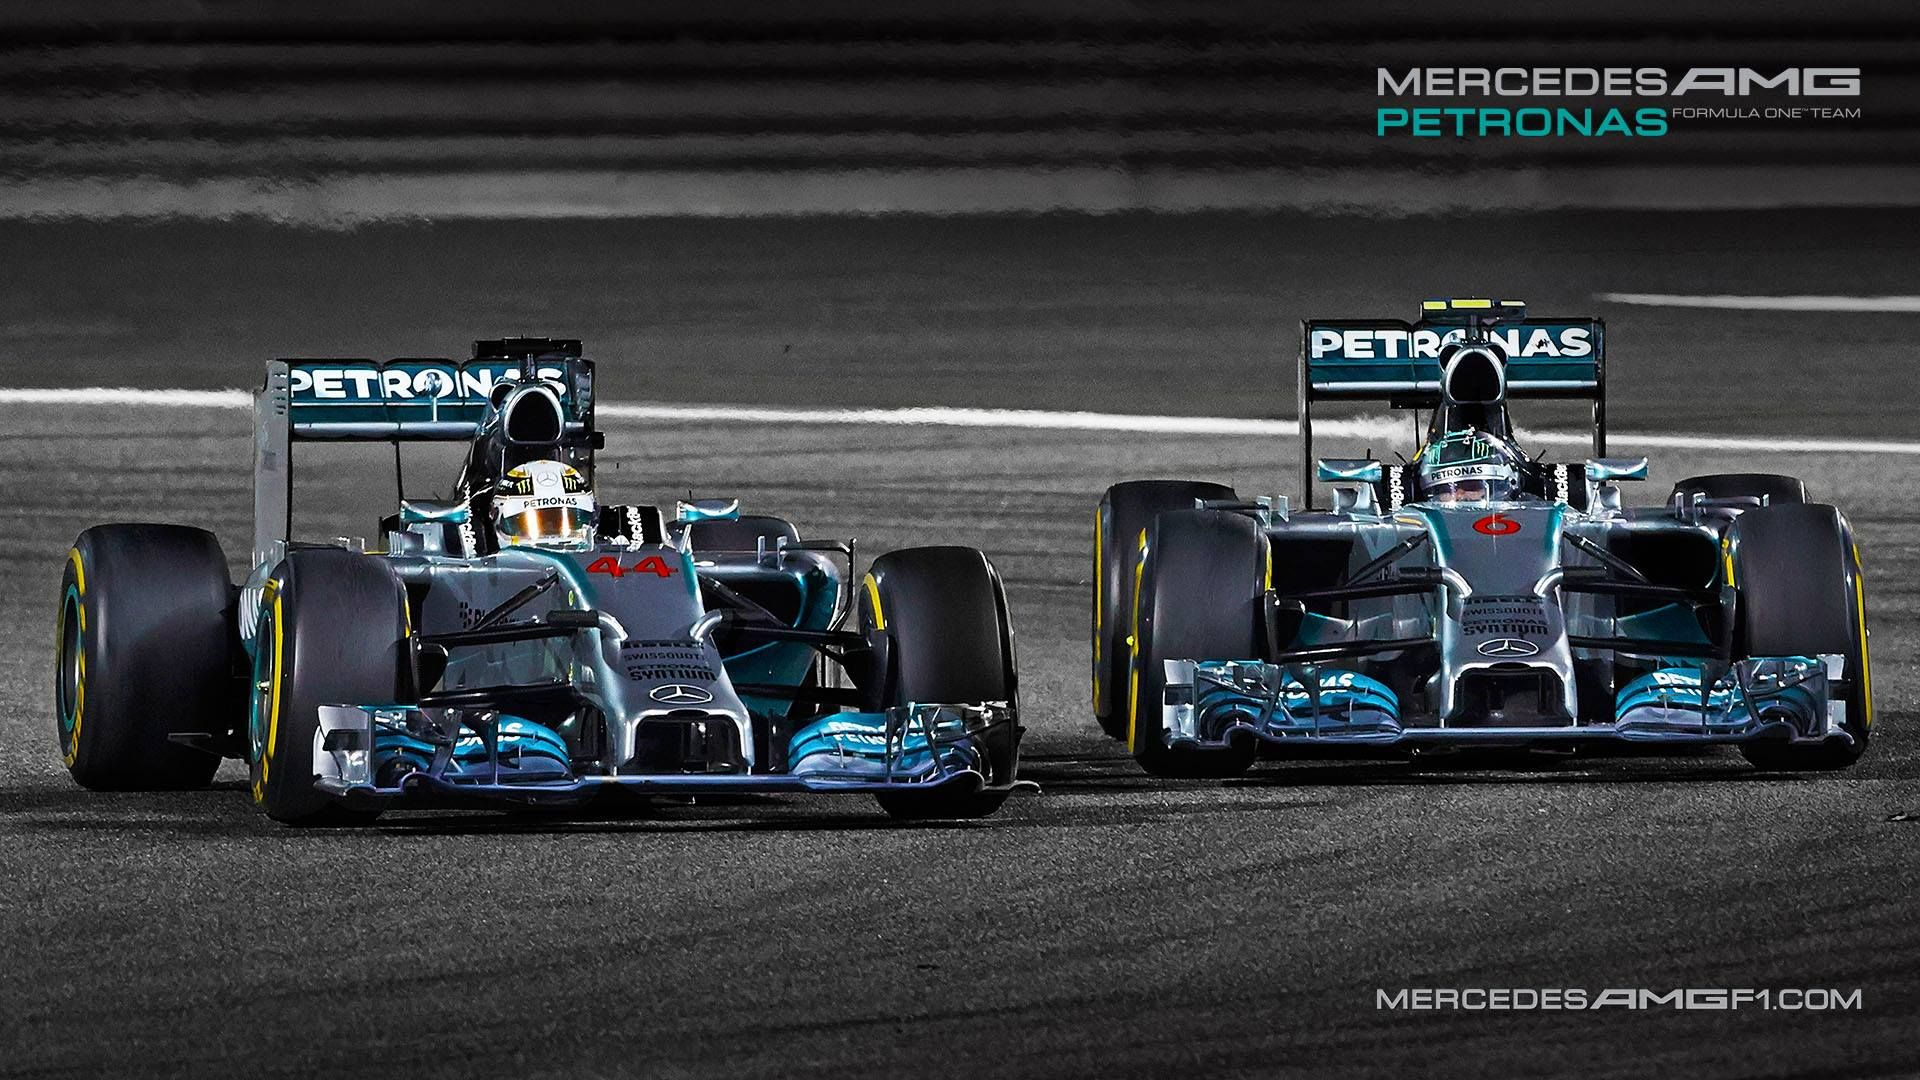 MotorsportMonday Want Some F1 Wallpapers Enjoy These Pics Of Nico Rosberg Lewis Hamilton And The W05